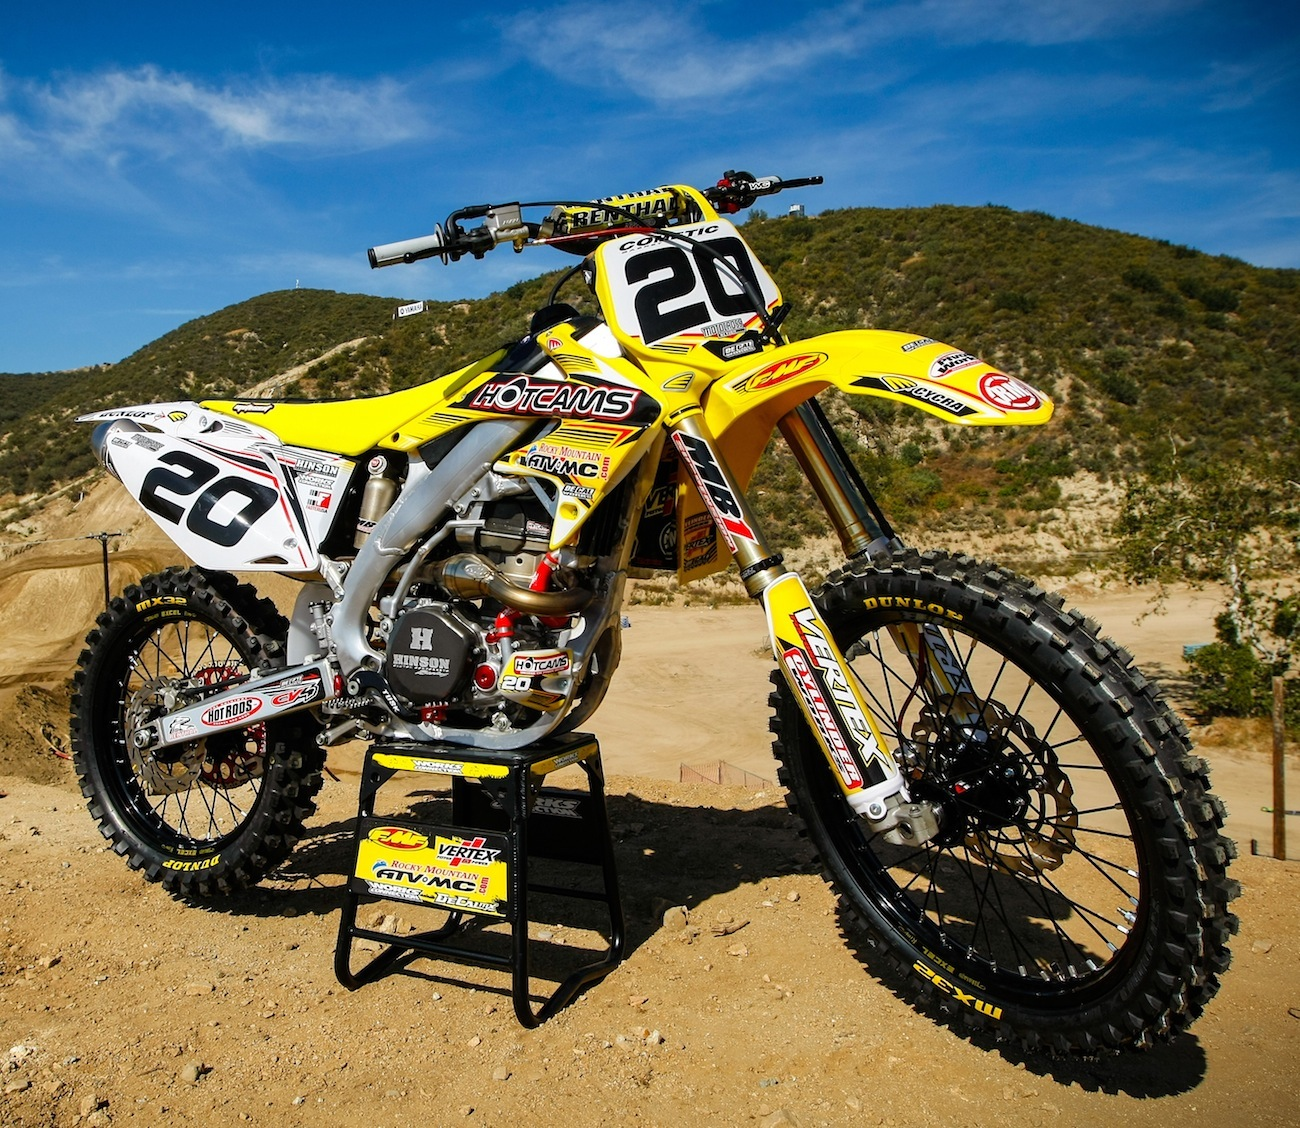 Can You Win On A 2008 Honda Crf450 You Bet Motocross Action Magazine